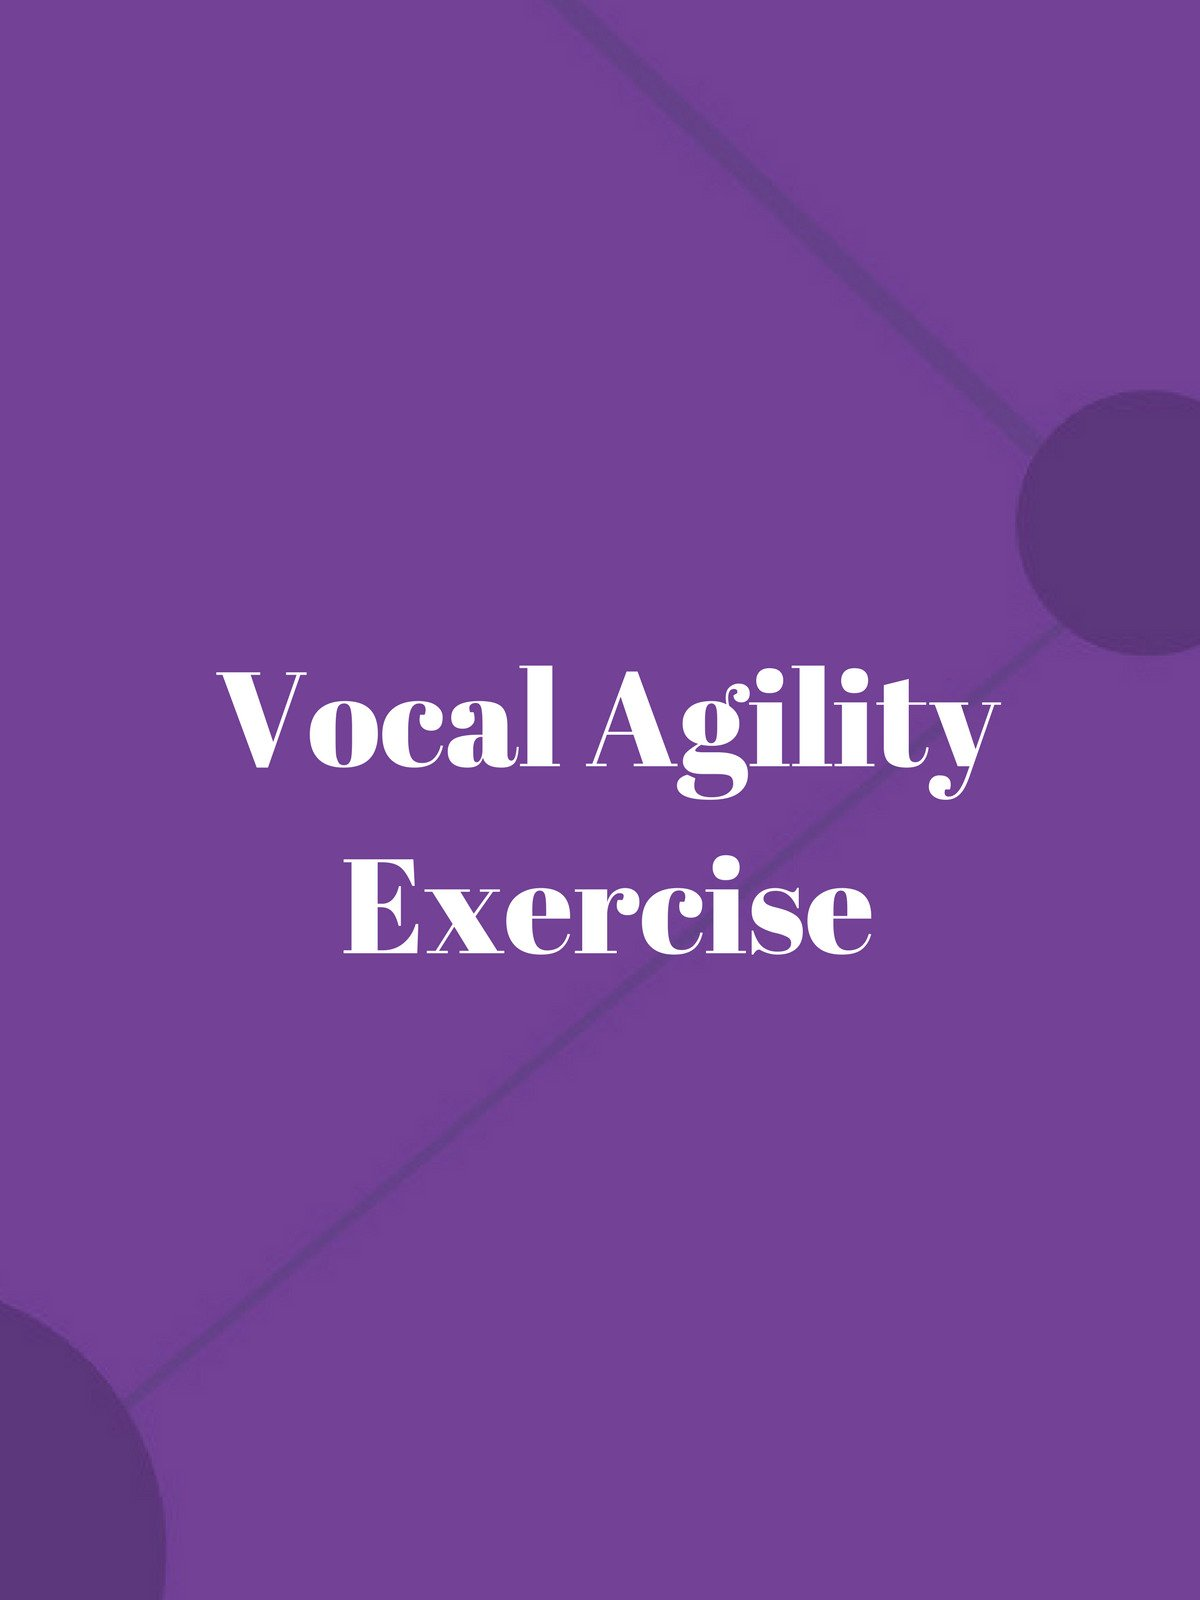 Vocal Agility Exercise